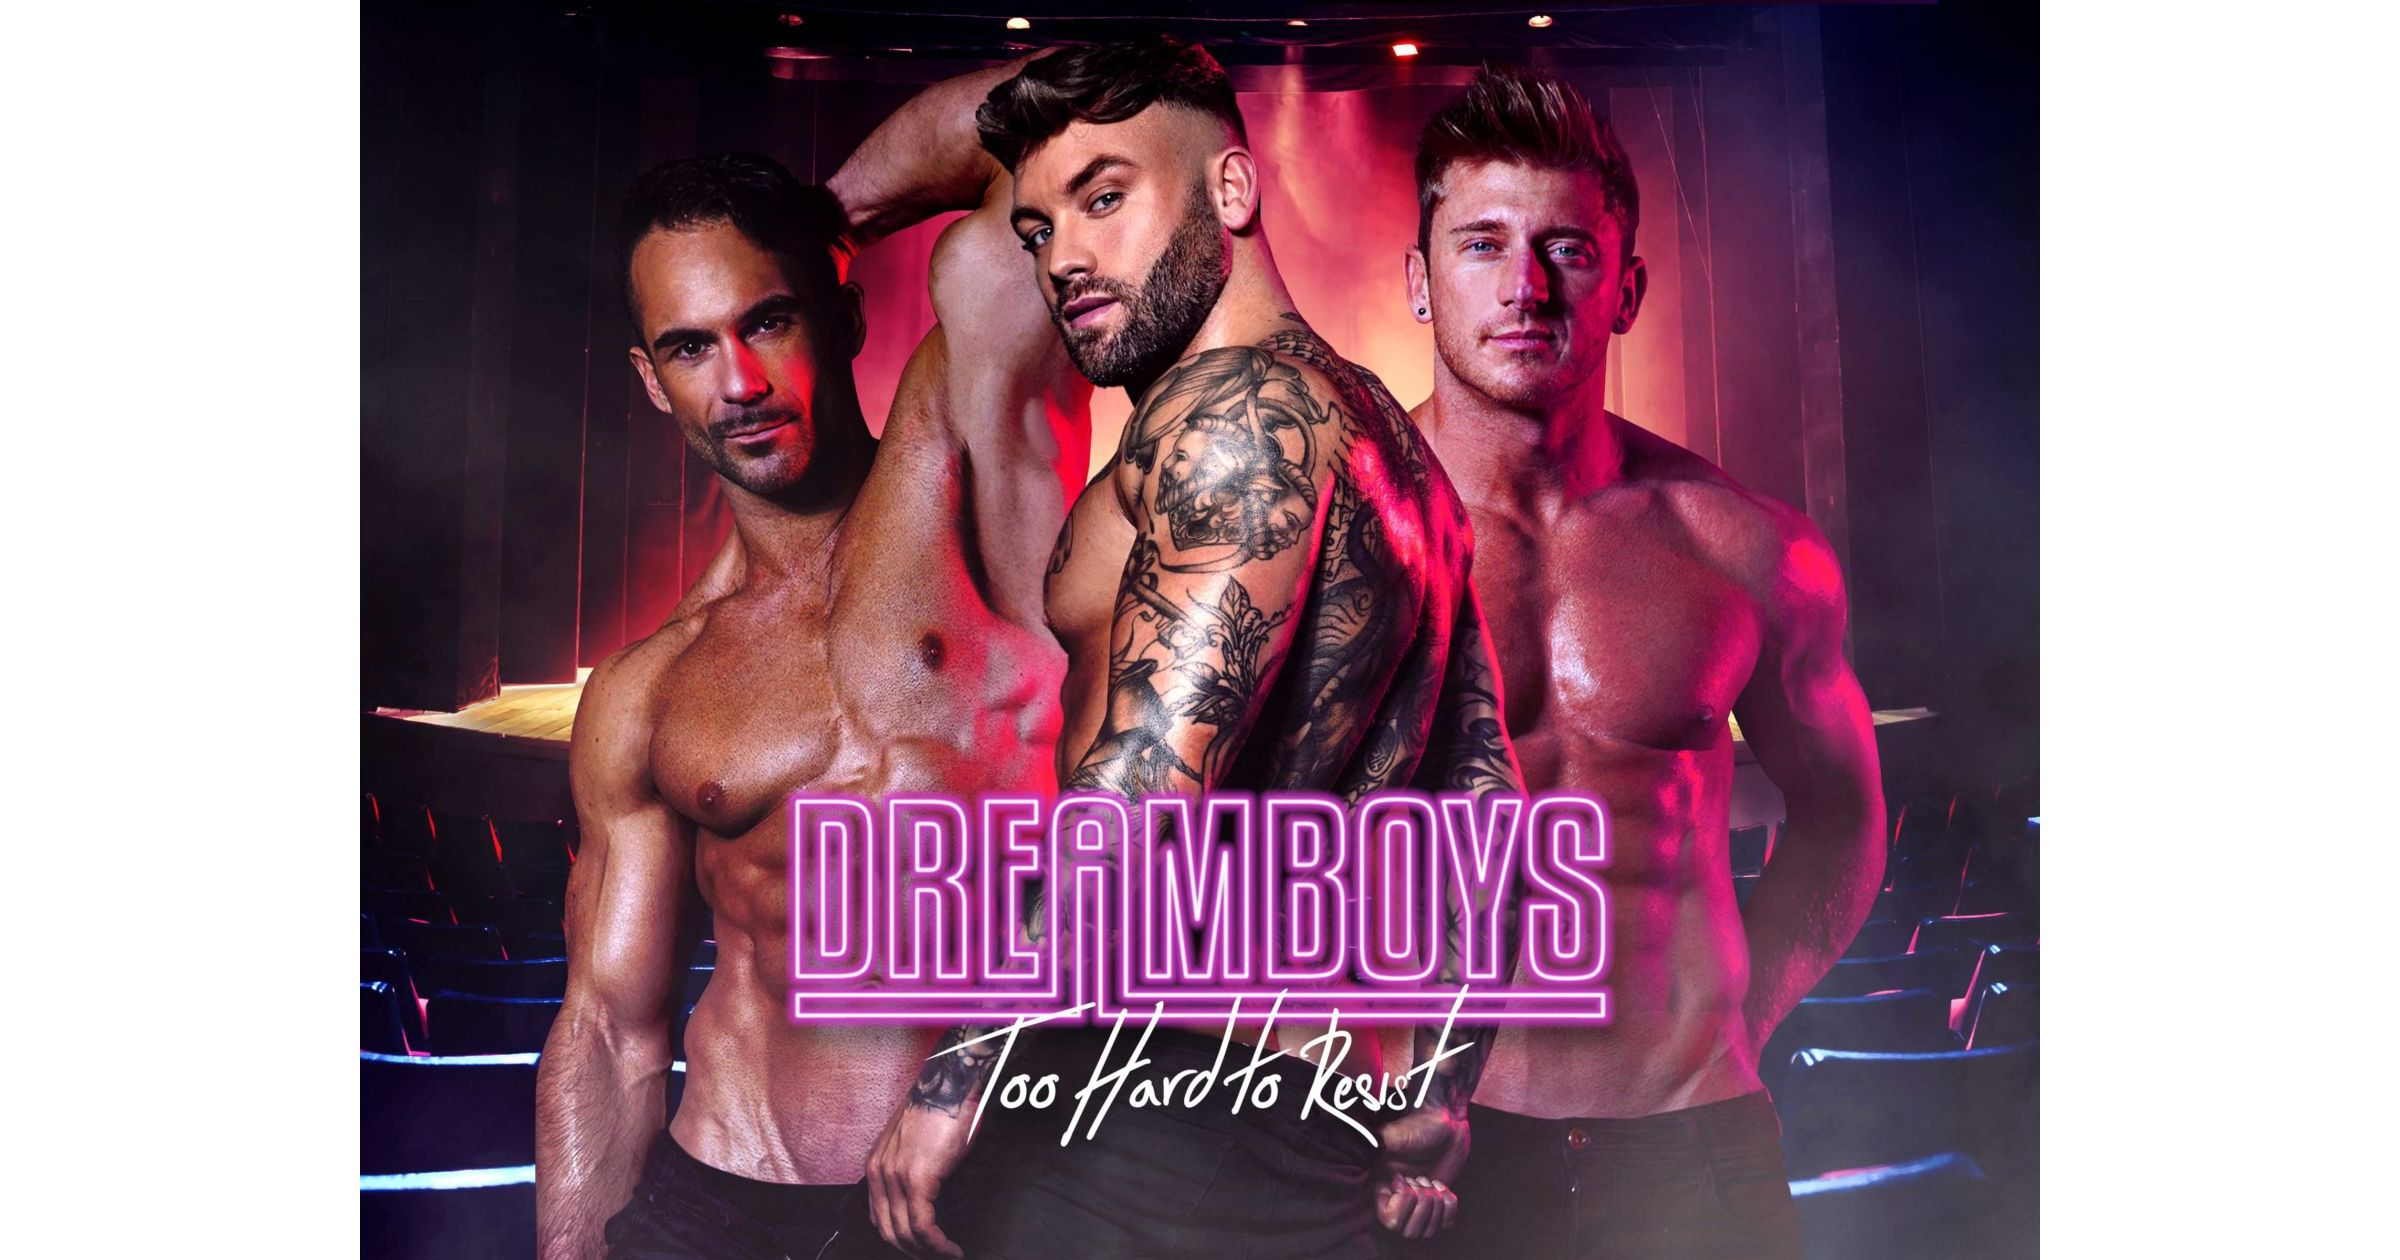 Dreamboys & Cocktail Making